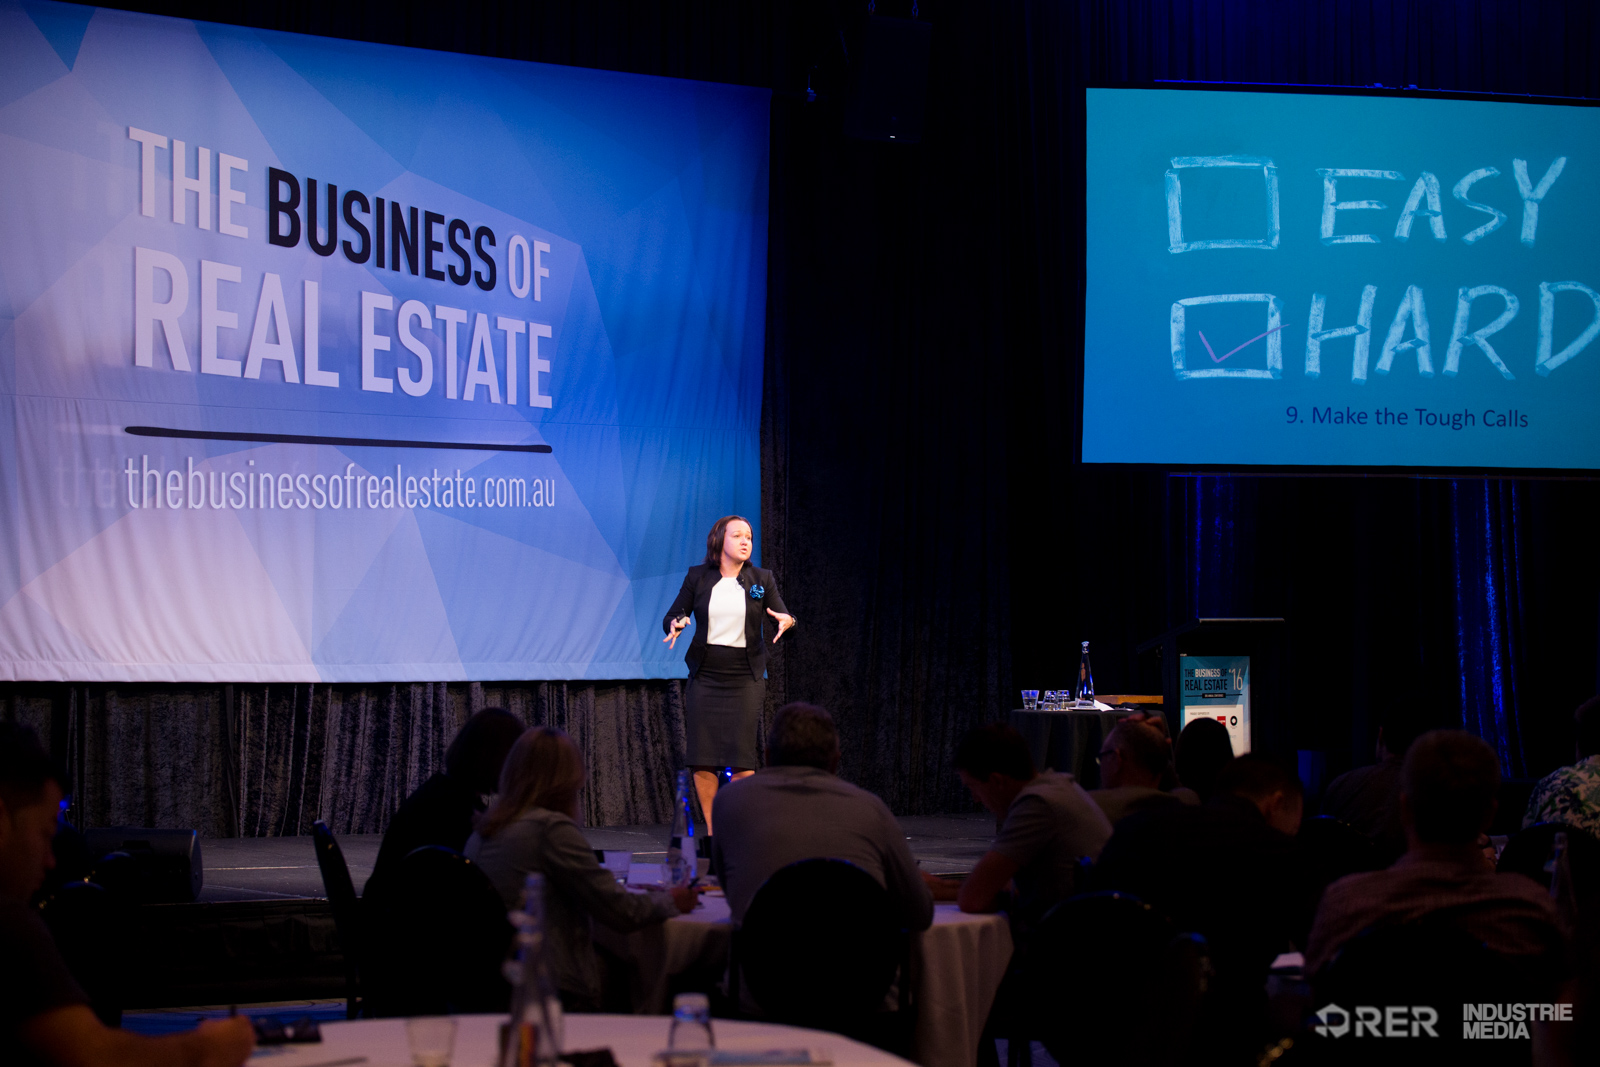 http://www.thebusinessofrealestate.com.au/wp-content/uploads/2016/09/RER_BUSINESS_OF_REAL_ESTATE-52.jpg